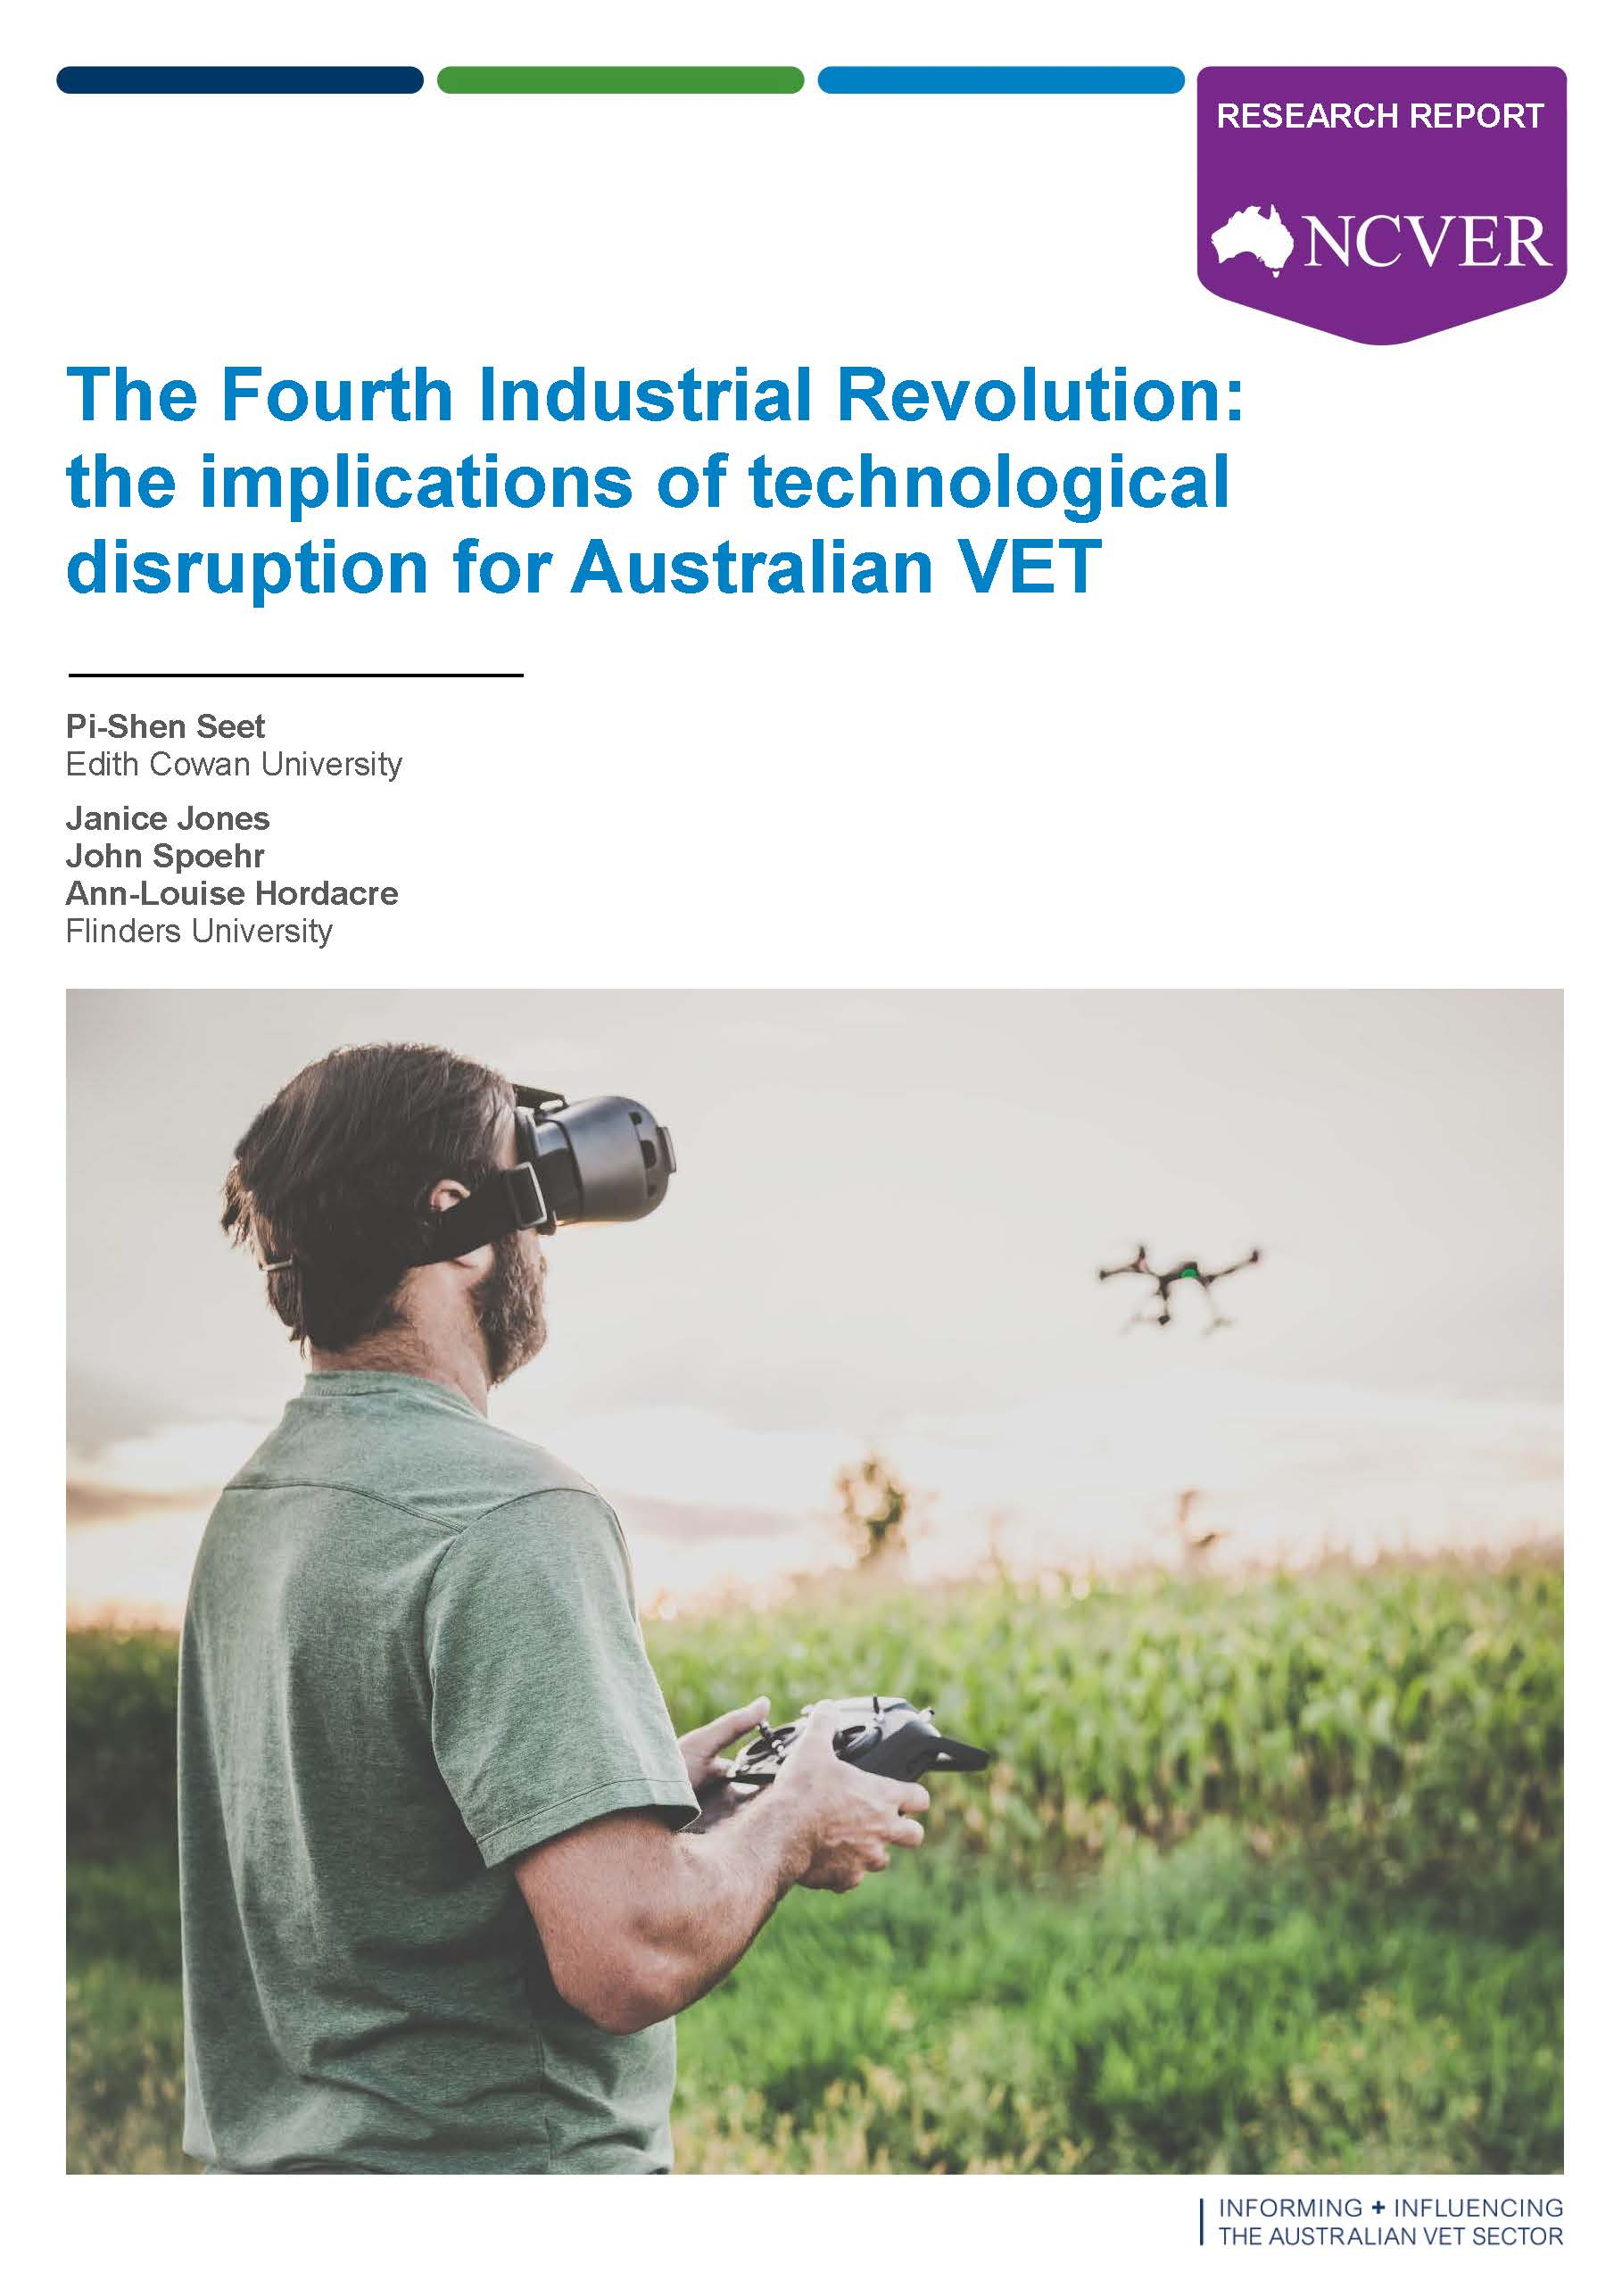 The Fourth Industrial Revolution - the implications of technological disruption for Australian VET